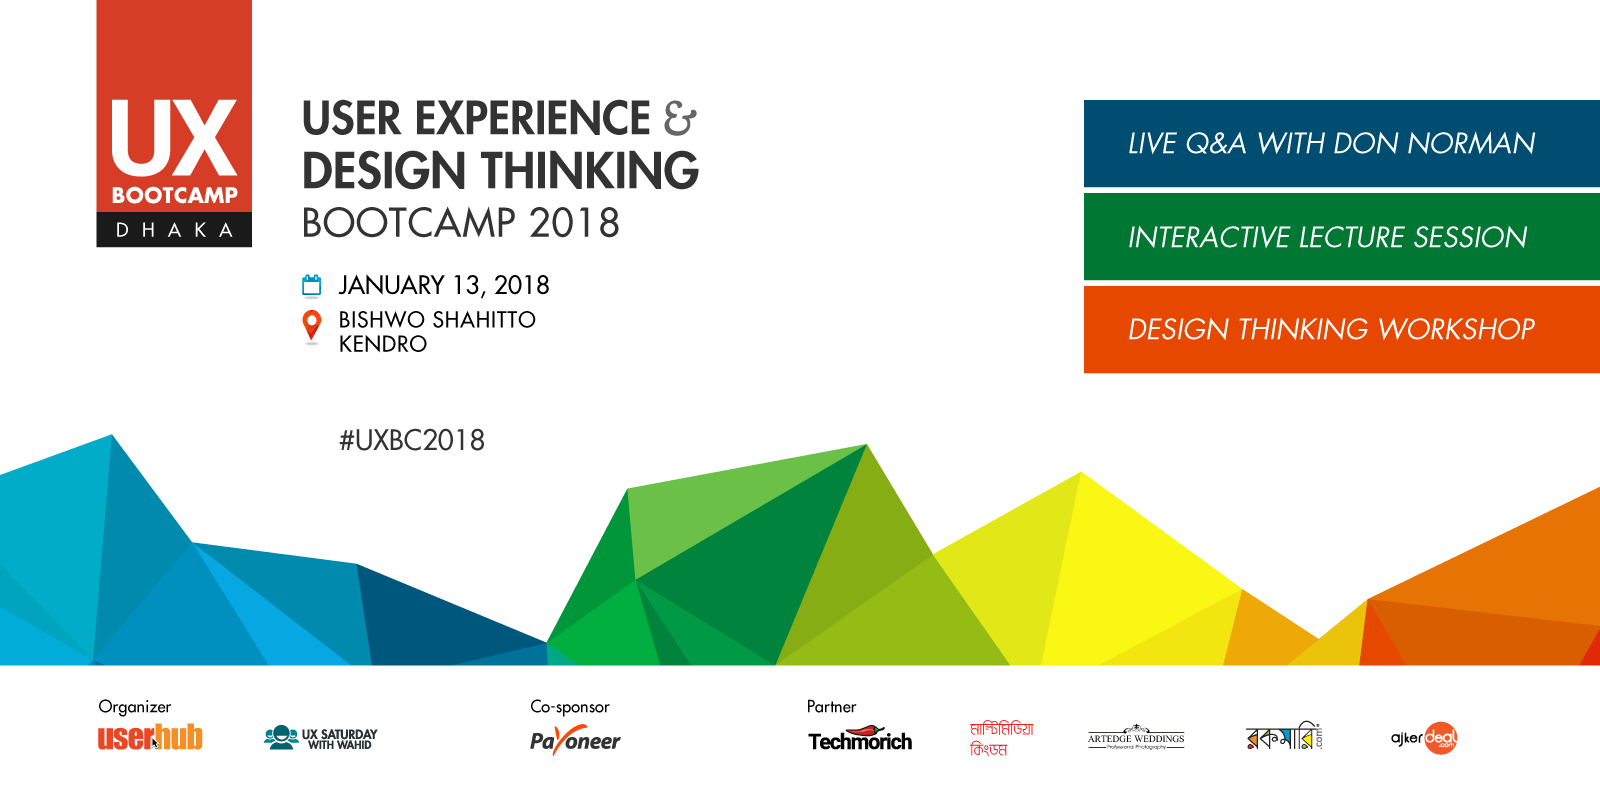 UX Design Boot Camp 2018: Day-long User Experience & Design Thinking Workshop